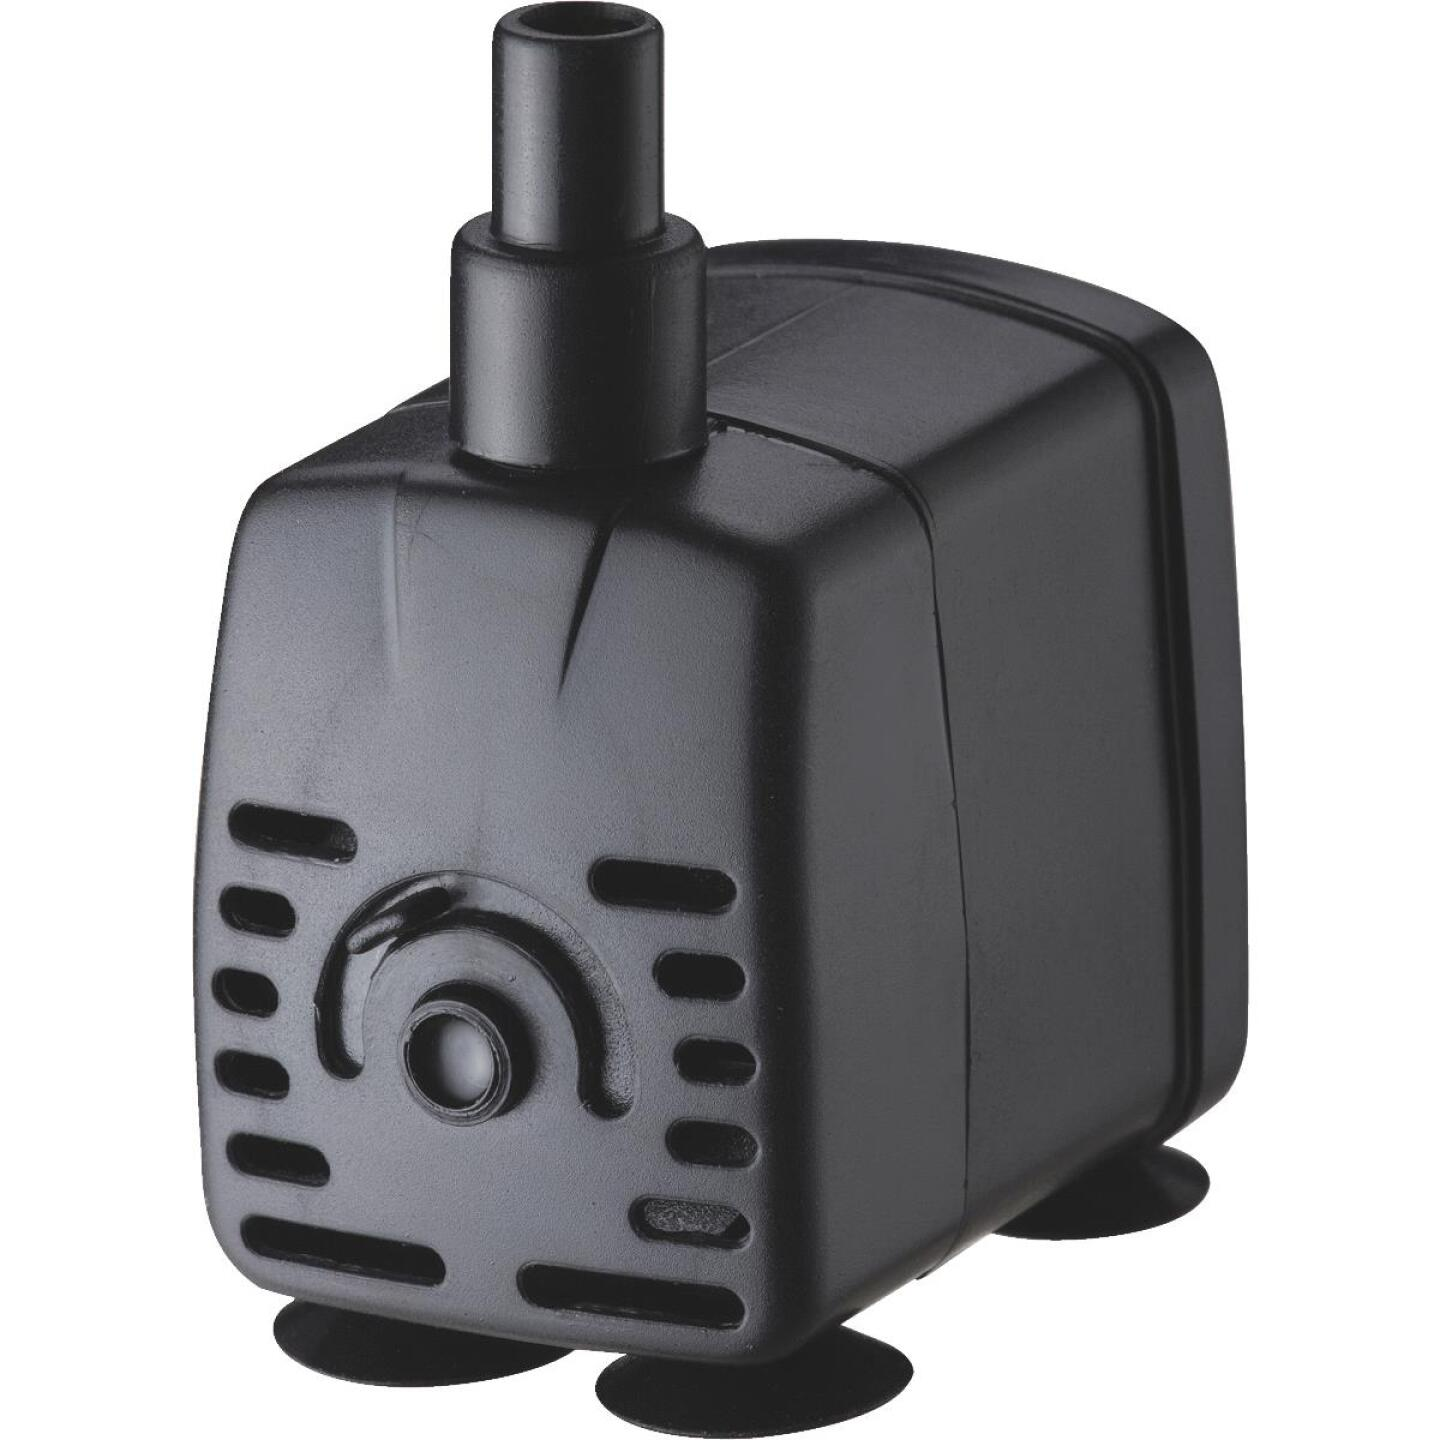 PondMaster Eco 55GPH 60Hz Poly Fountain Pump Image 1